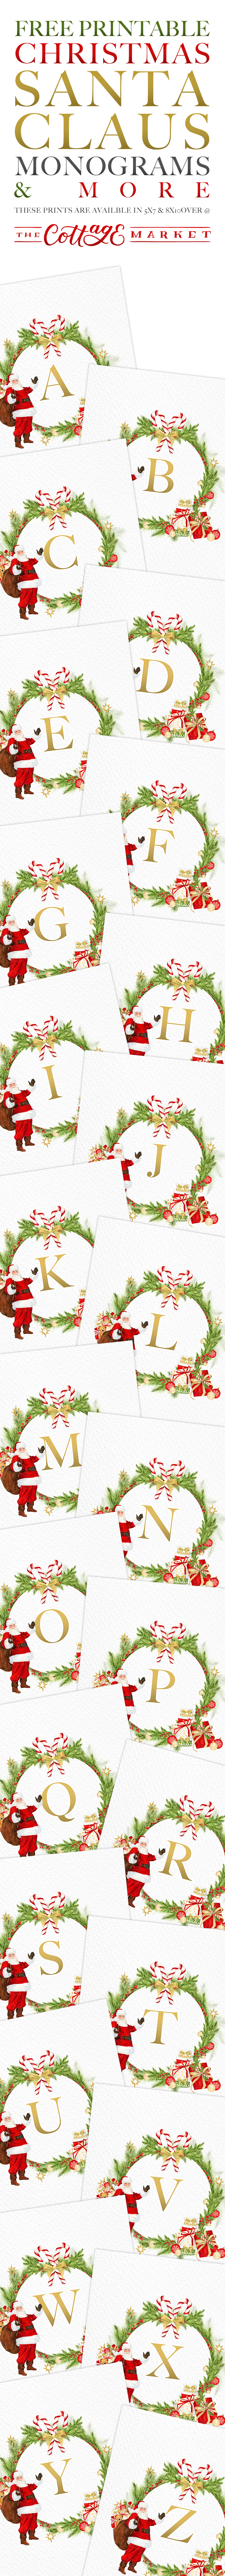 http://thecottagemarket.com/wp-content/uploads/2017/10/TCM-TraditionalChristmasMonograms-T-1.jpg